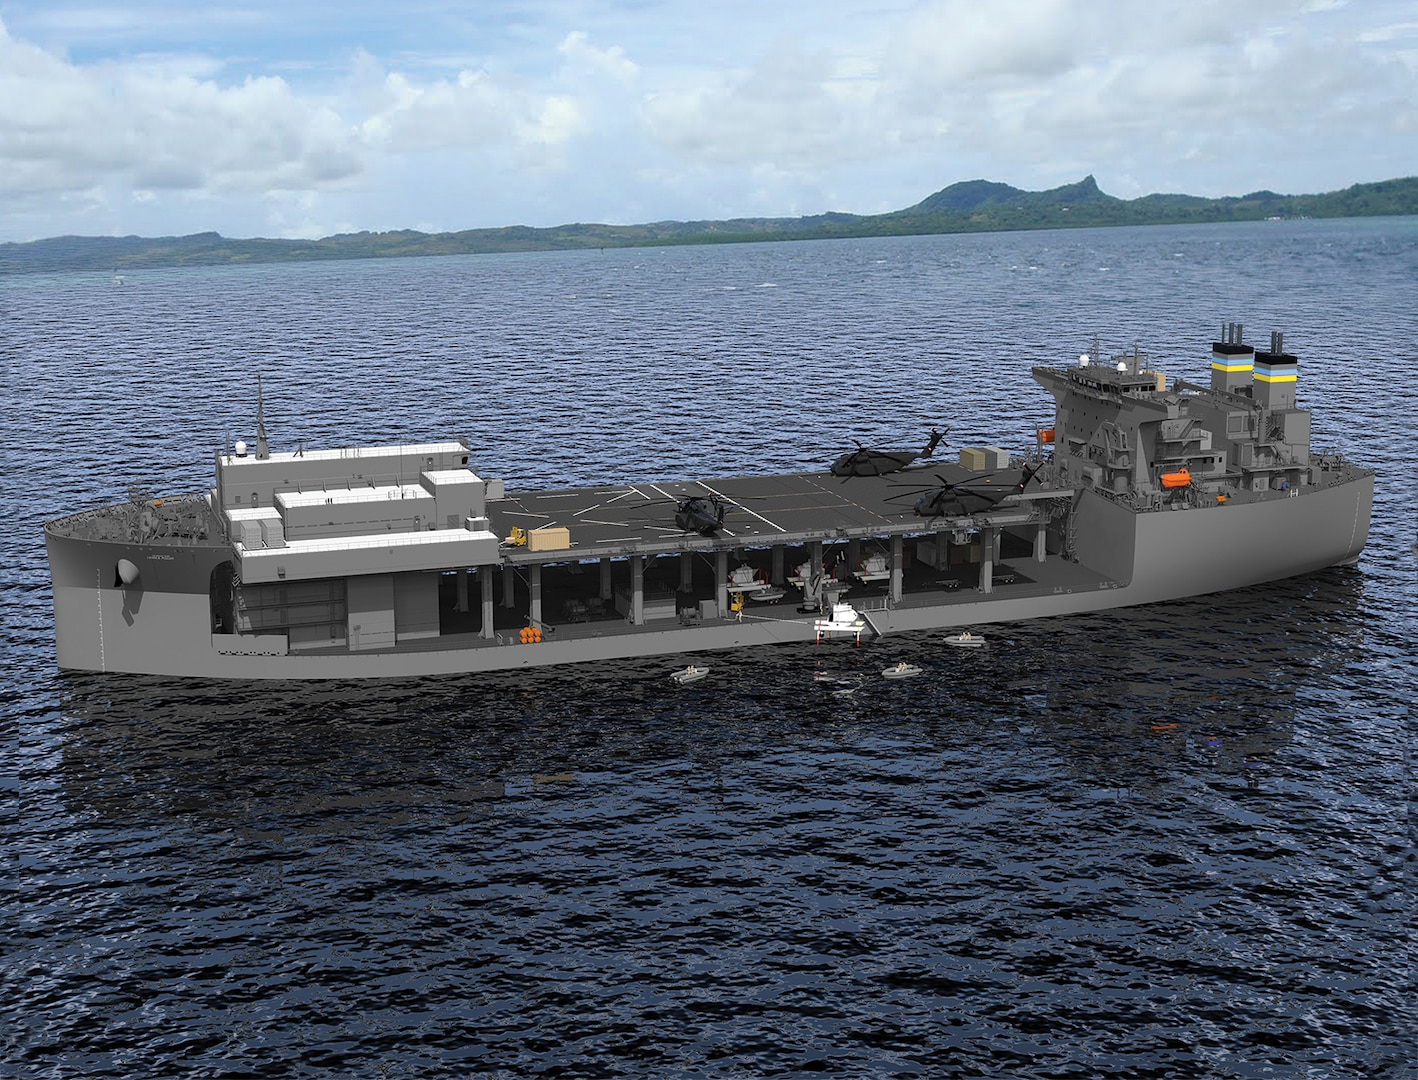 """171019-N-N0101-110 WASHINGTON (Oct. 19, 2017) An undated artist rendering of the future expeditionary sea base USNS Hershel """"Woody"""" Williams (T-ESB 4)."""